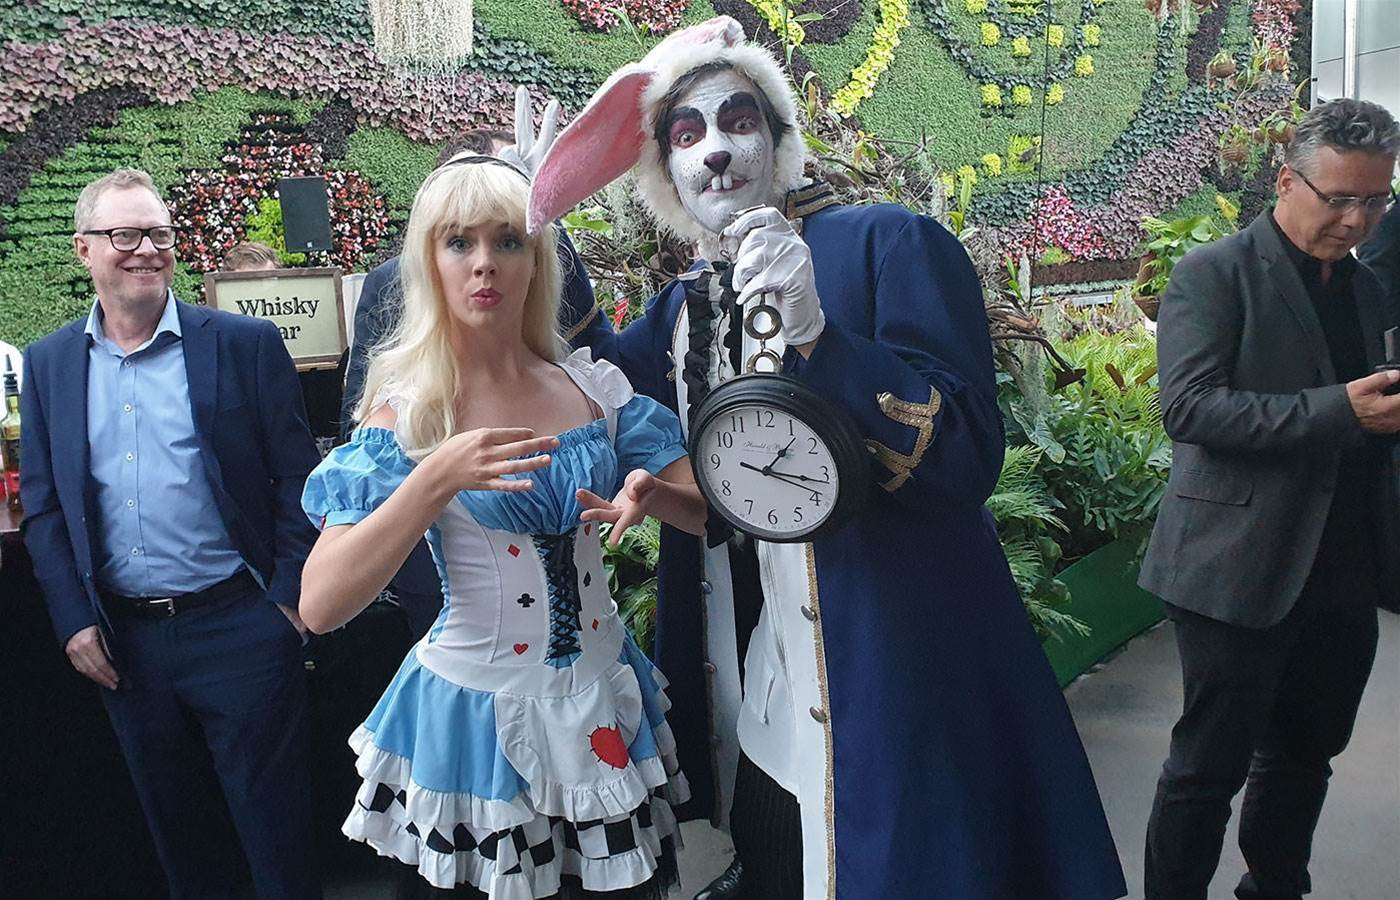 TPG partners and staff party in a lavish Wonderland